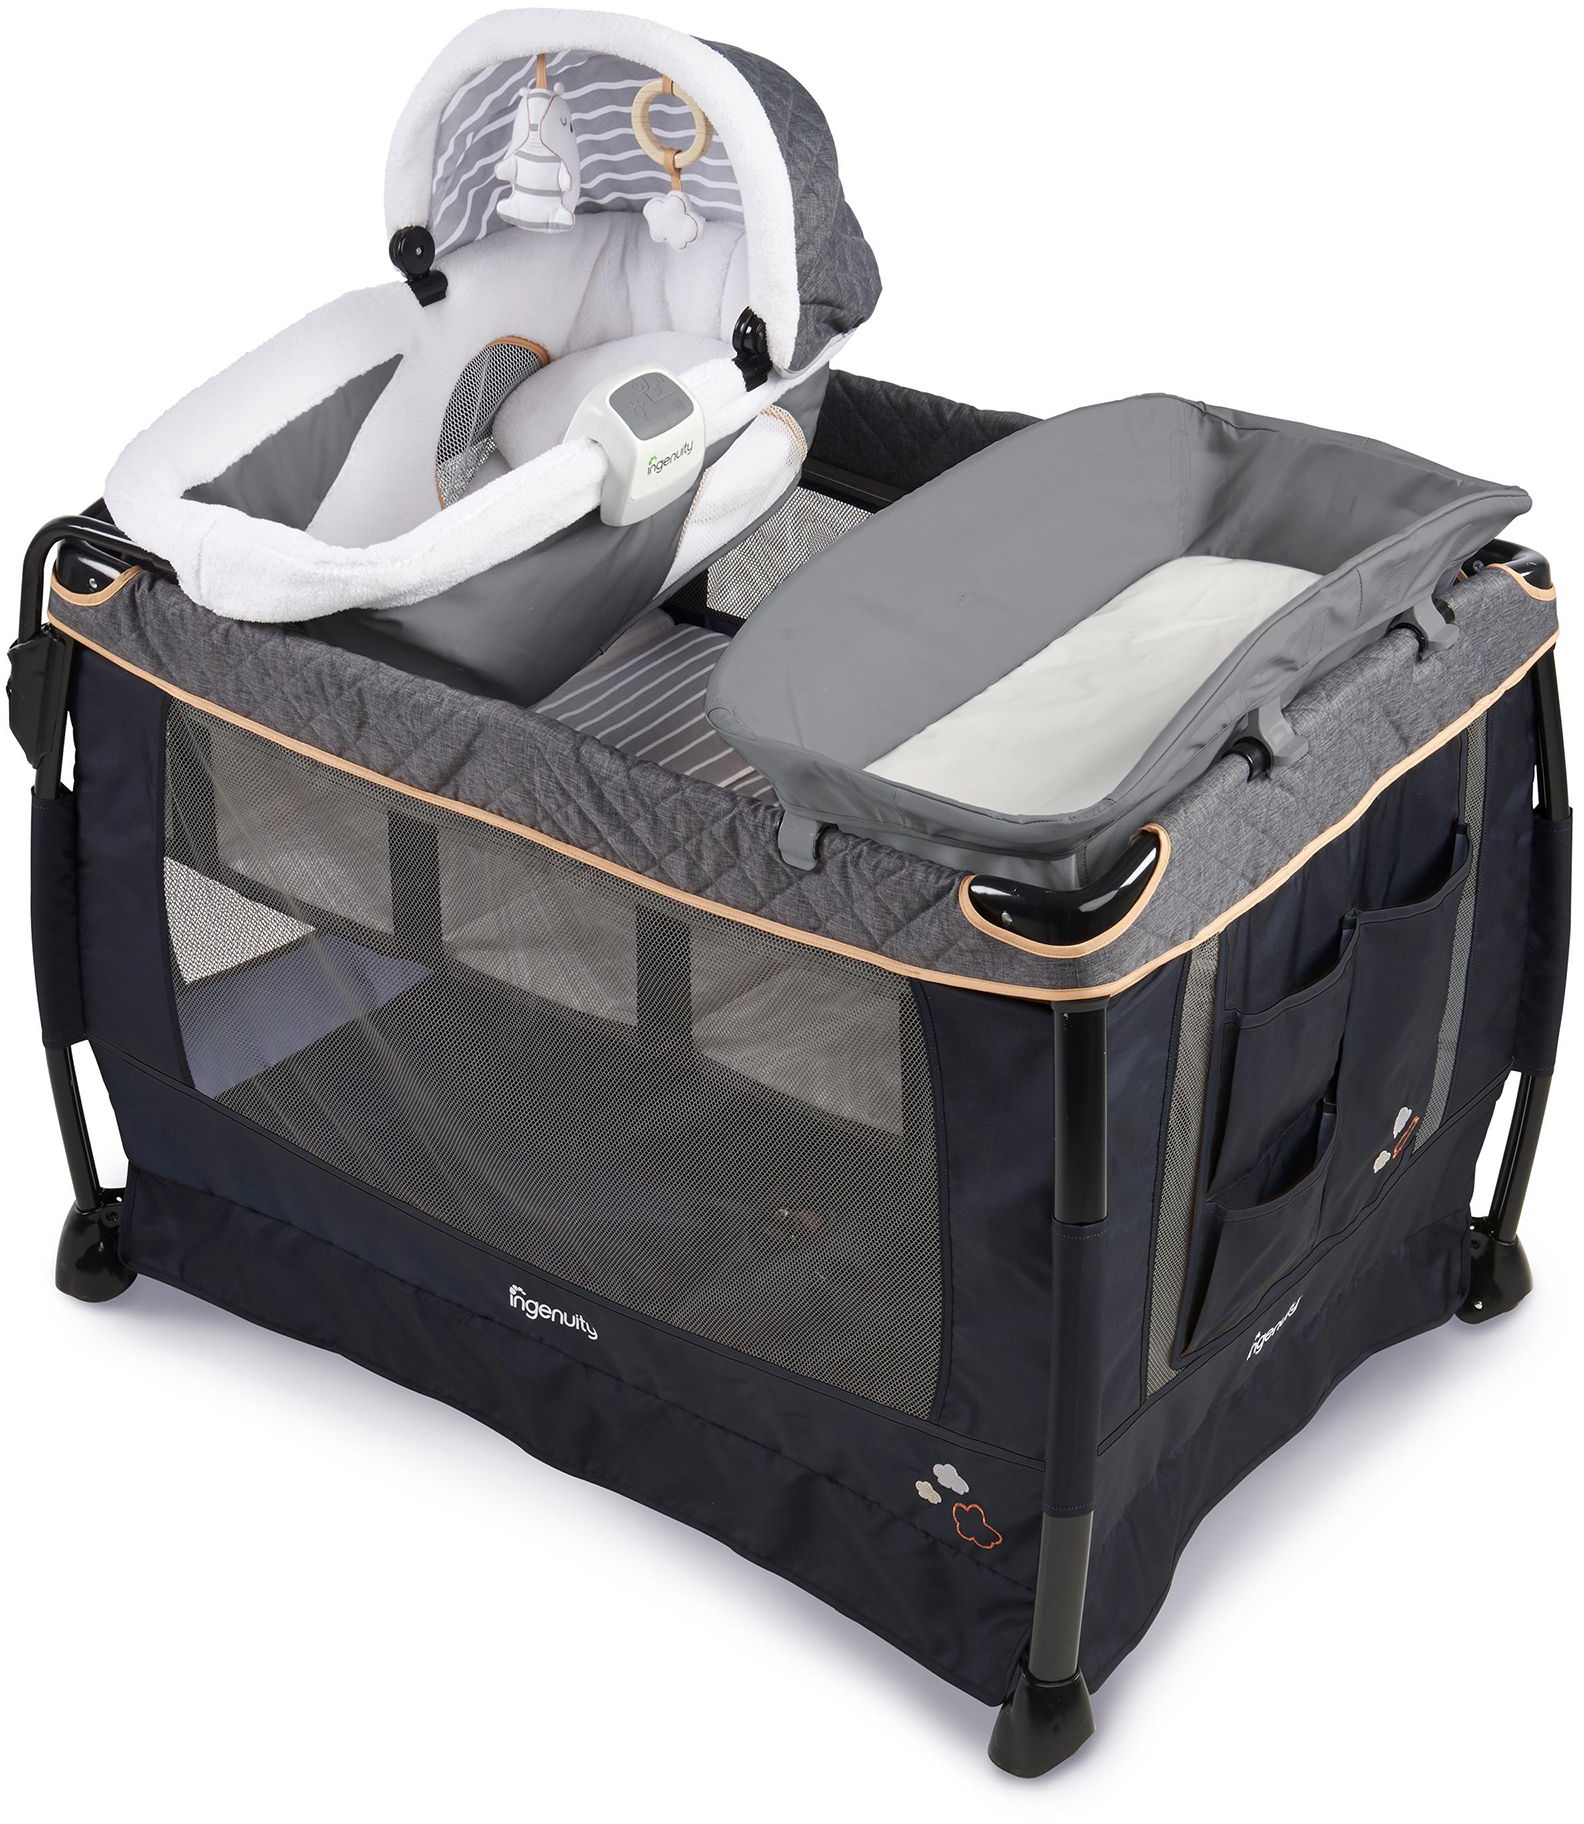 Ingenuity Smart and Simple Boutique Playard in Bella Teddy ...